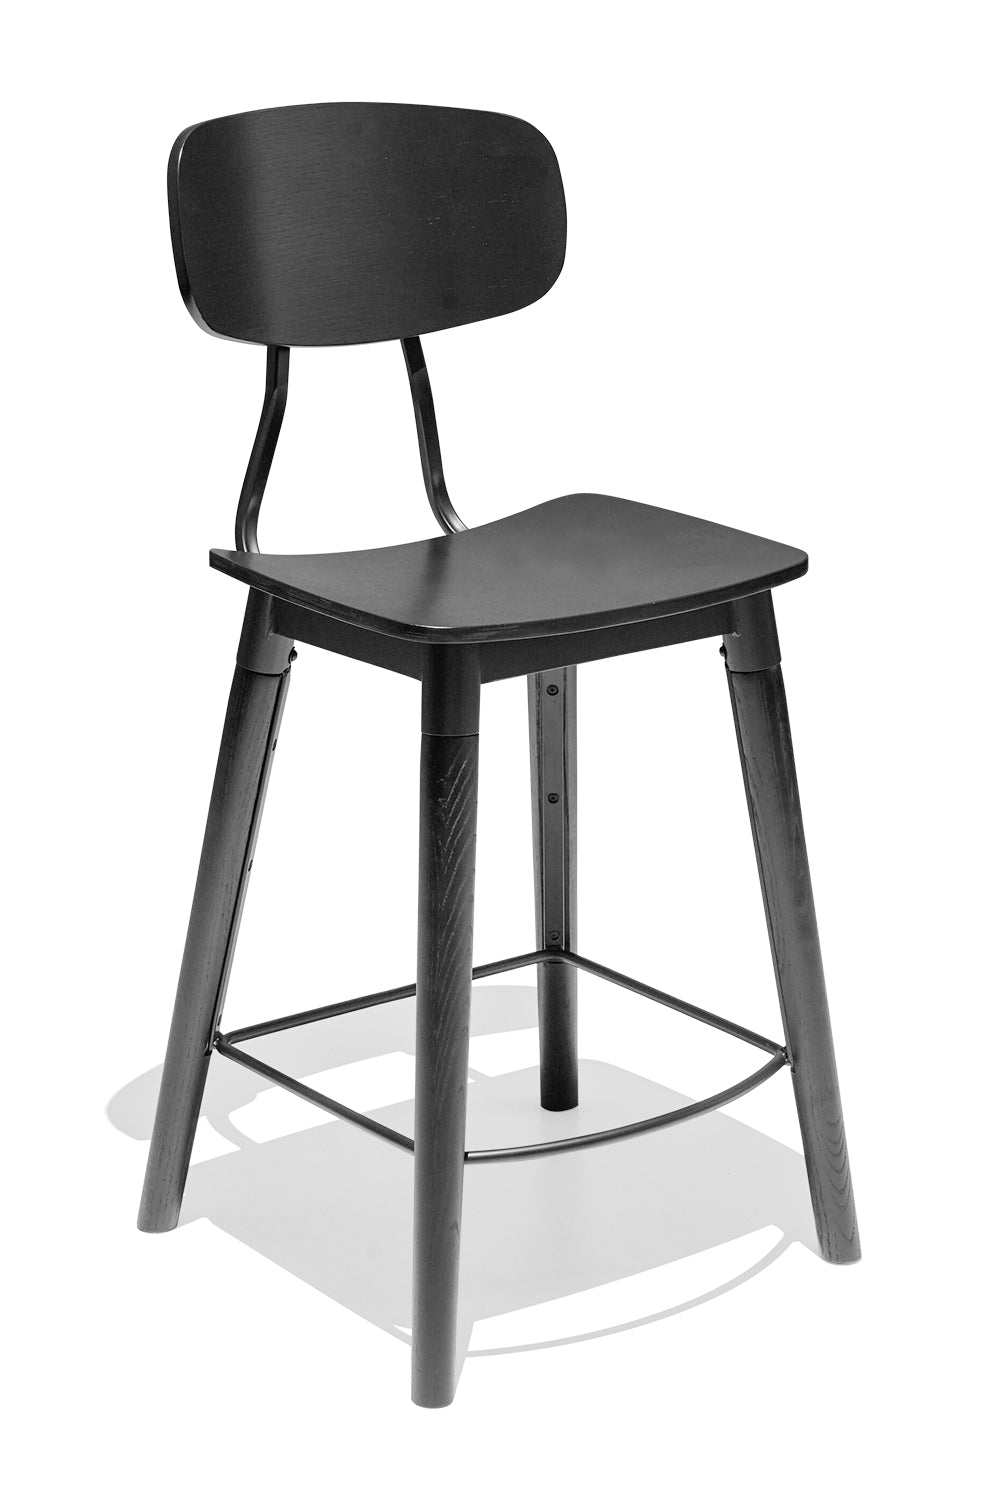 FRENCH INDUSTRIAL kitchen stool